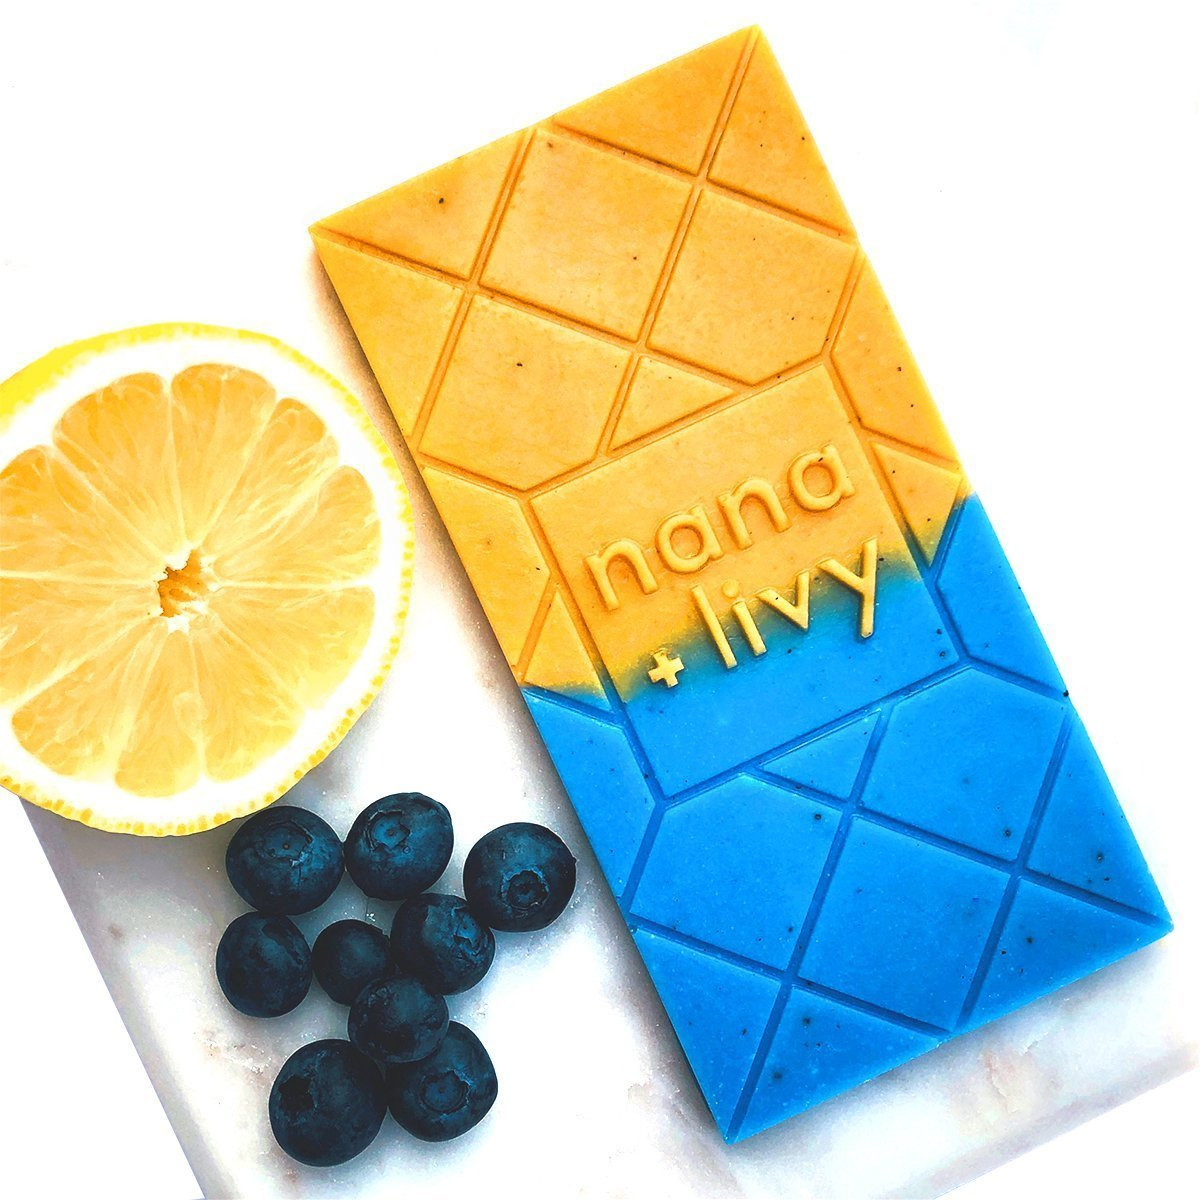 Valentine's day gift idea - spa collection 💝  Blueberry Lemonade Choco Soap    #blueberry #lemonade #chocolate #soap #spa #coconutoil #cocoabutter #fragrance #oil #lemonpowder #madeincanada #vancouver #ValentinesDay #valentinesdaygift #giftidea